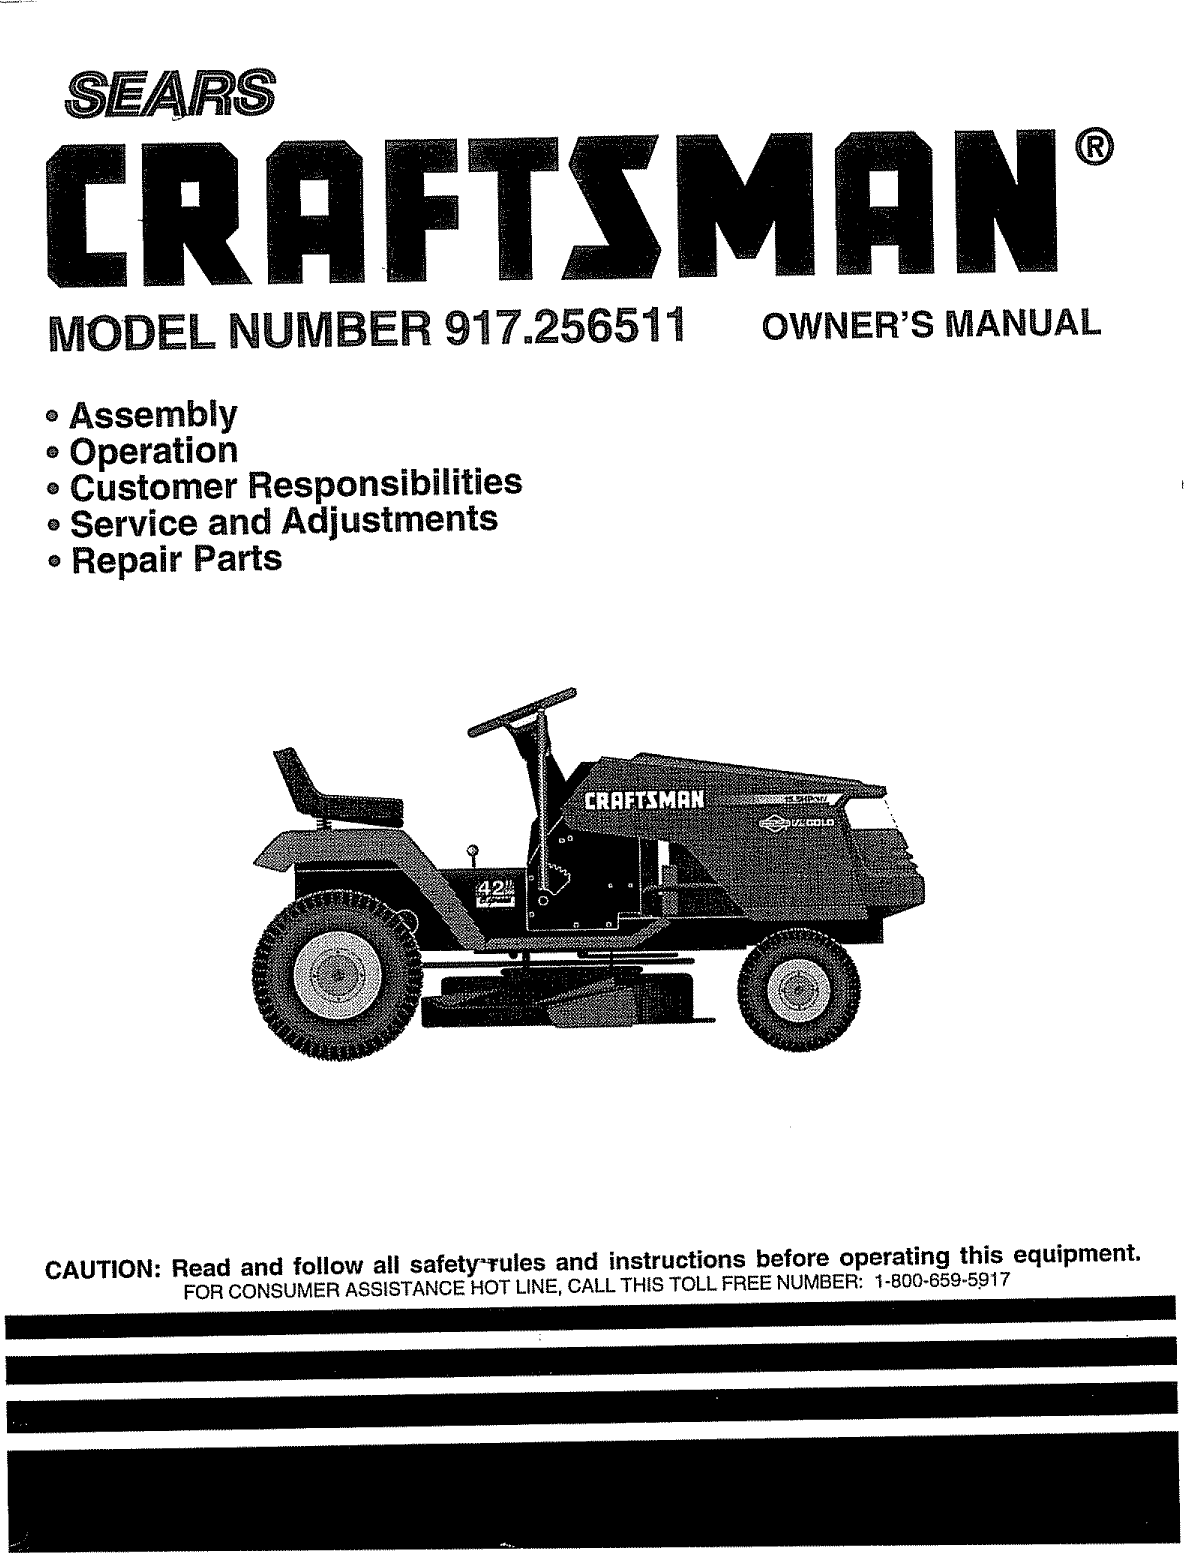 Craftsman 917256511 User Manual Tractor Manuals And Guides L1005584 Turtle Wax Ampamp Dry Spray T9